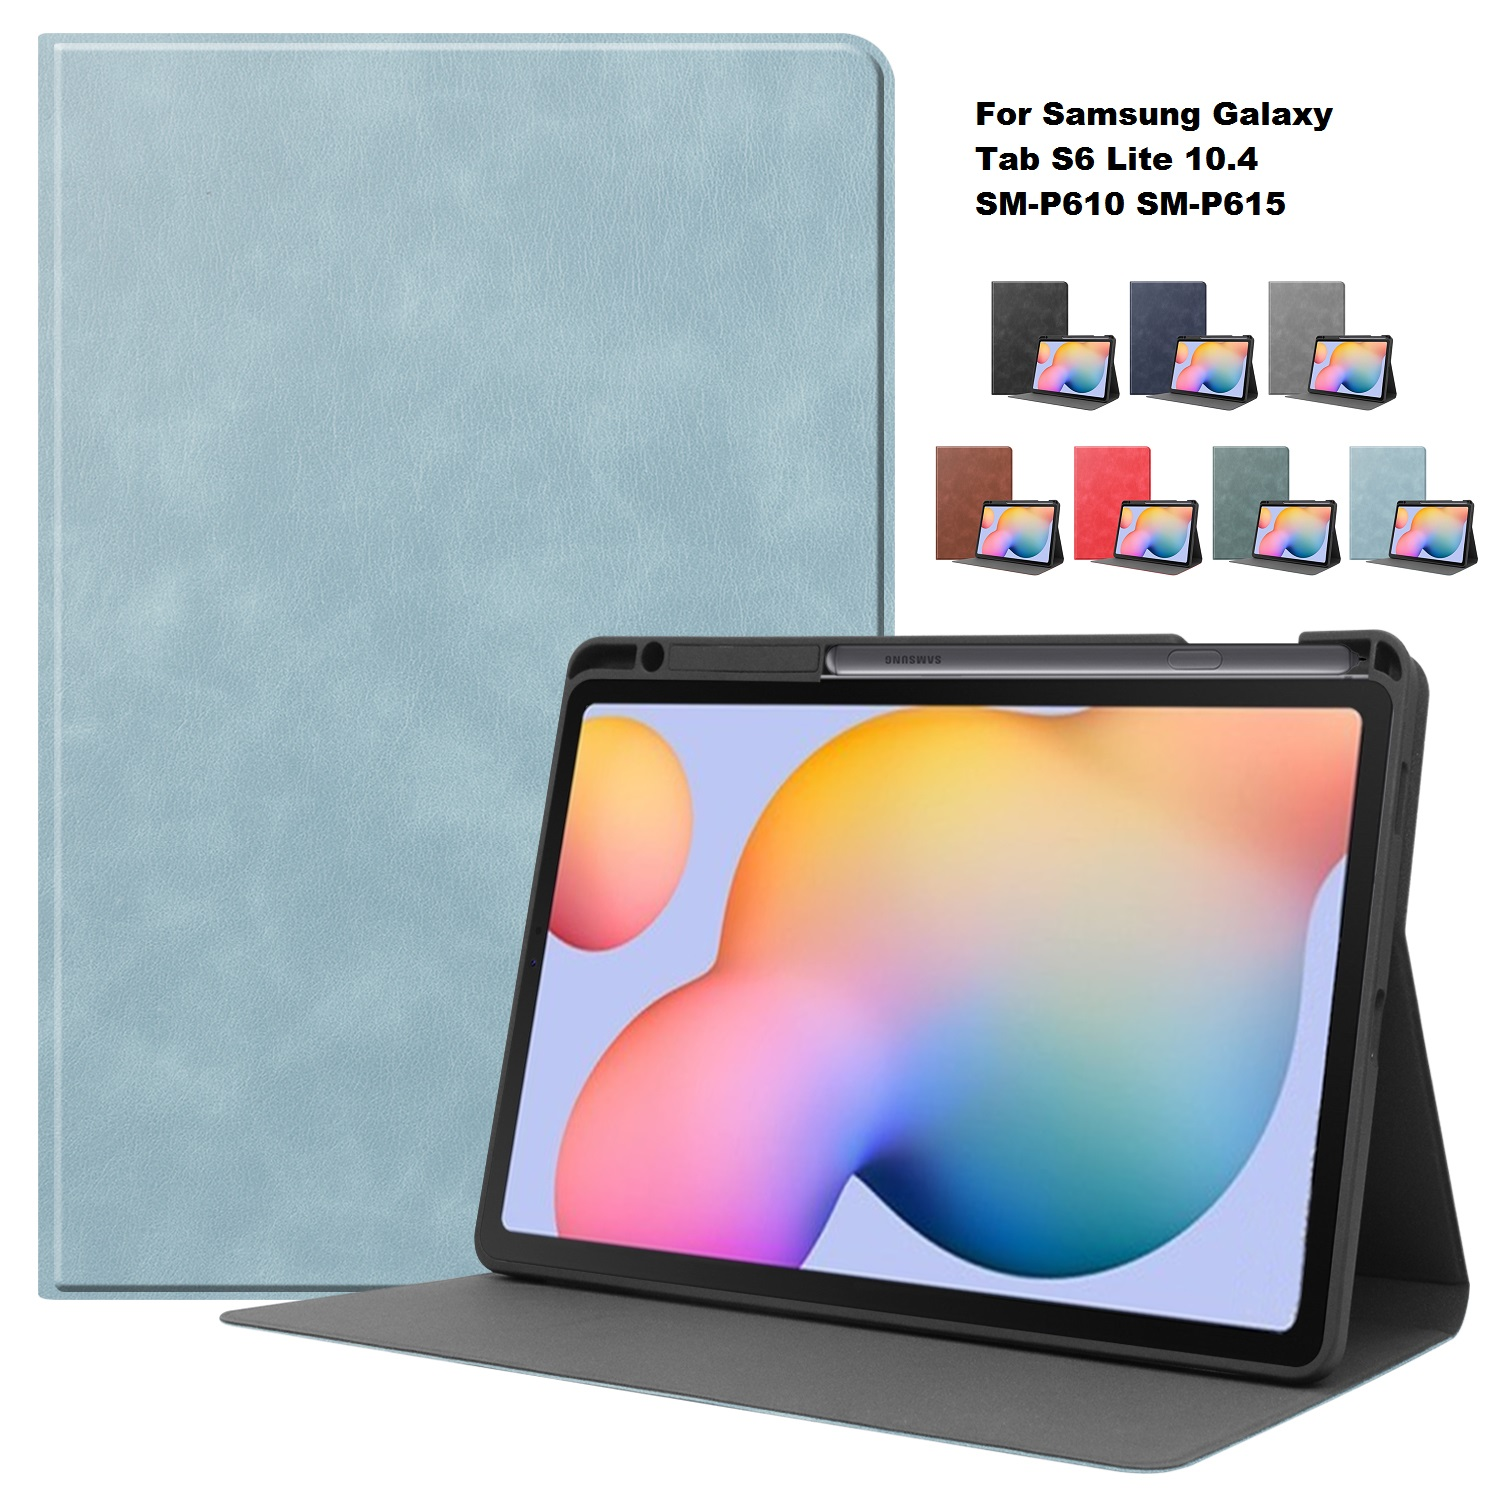 2020 Case For Samsung Galaxy Tab S6 Lite 10.4 Pencil Holder For Samsung SM-P610 P615 PU Leather Stand Cover Tablet Shell